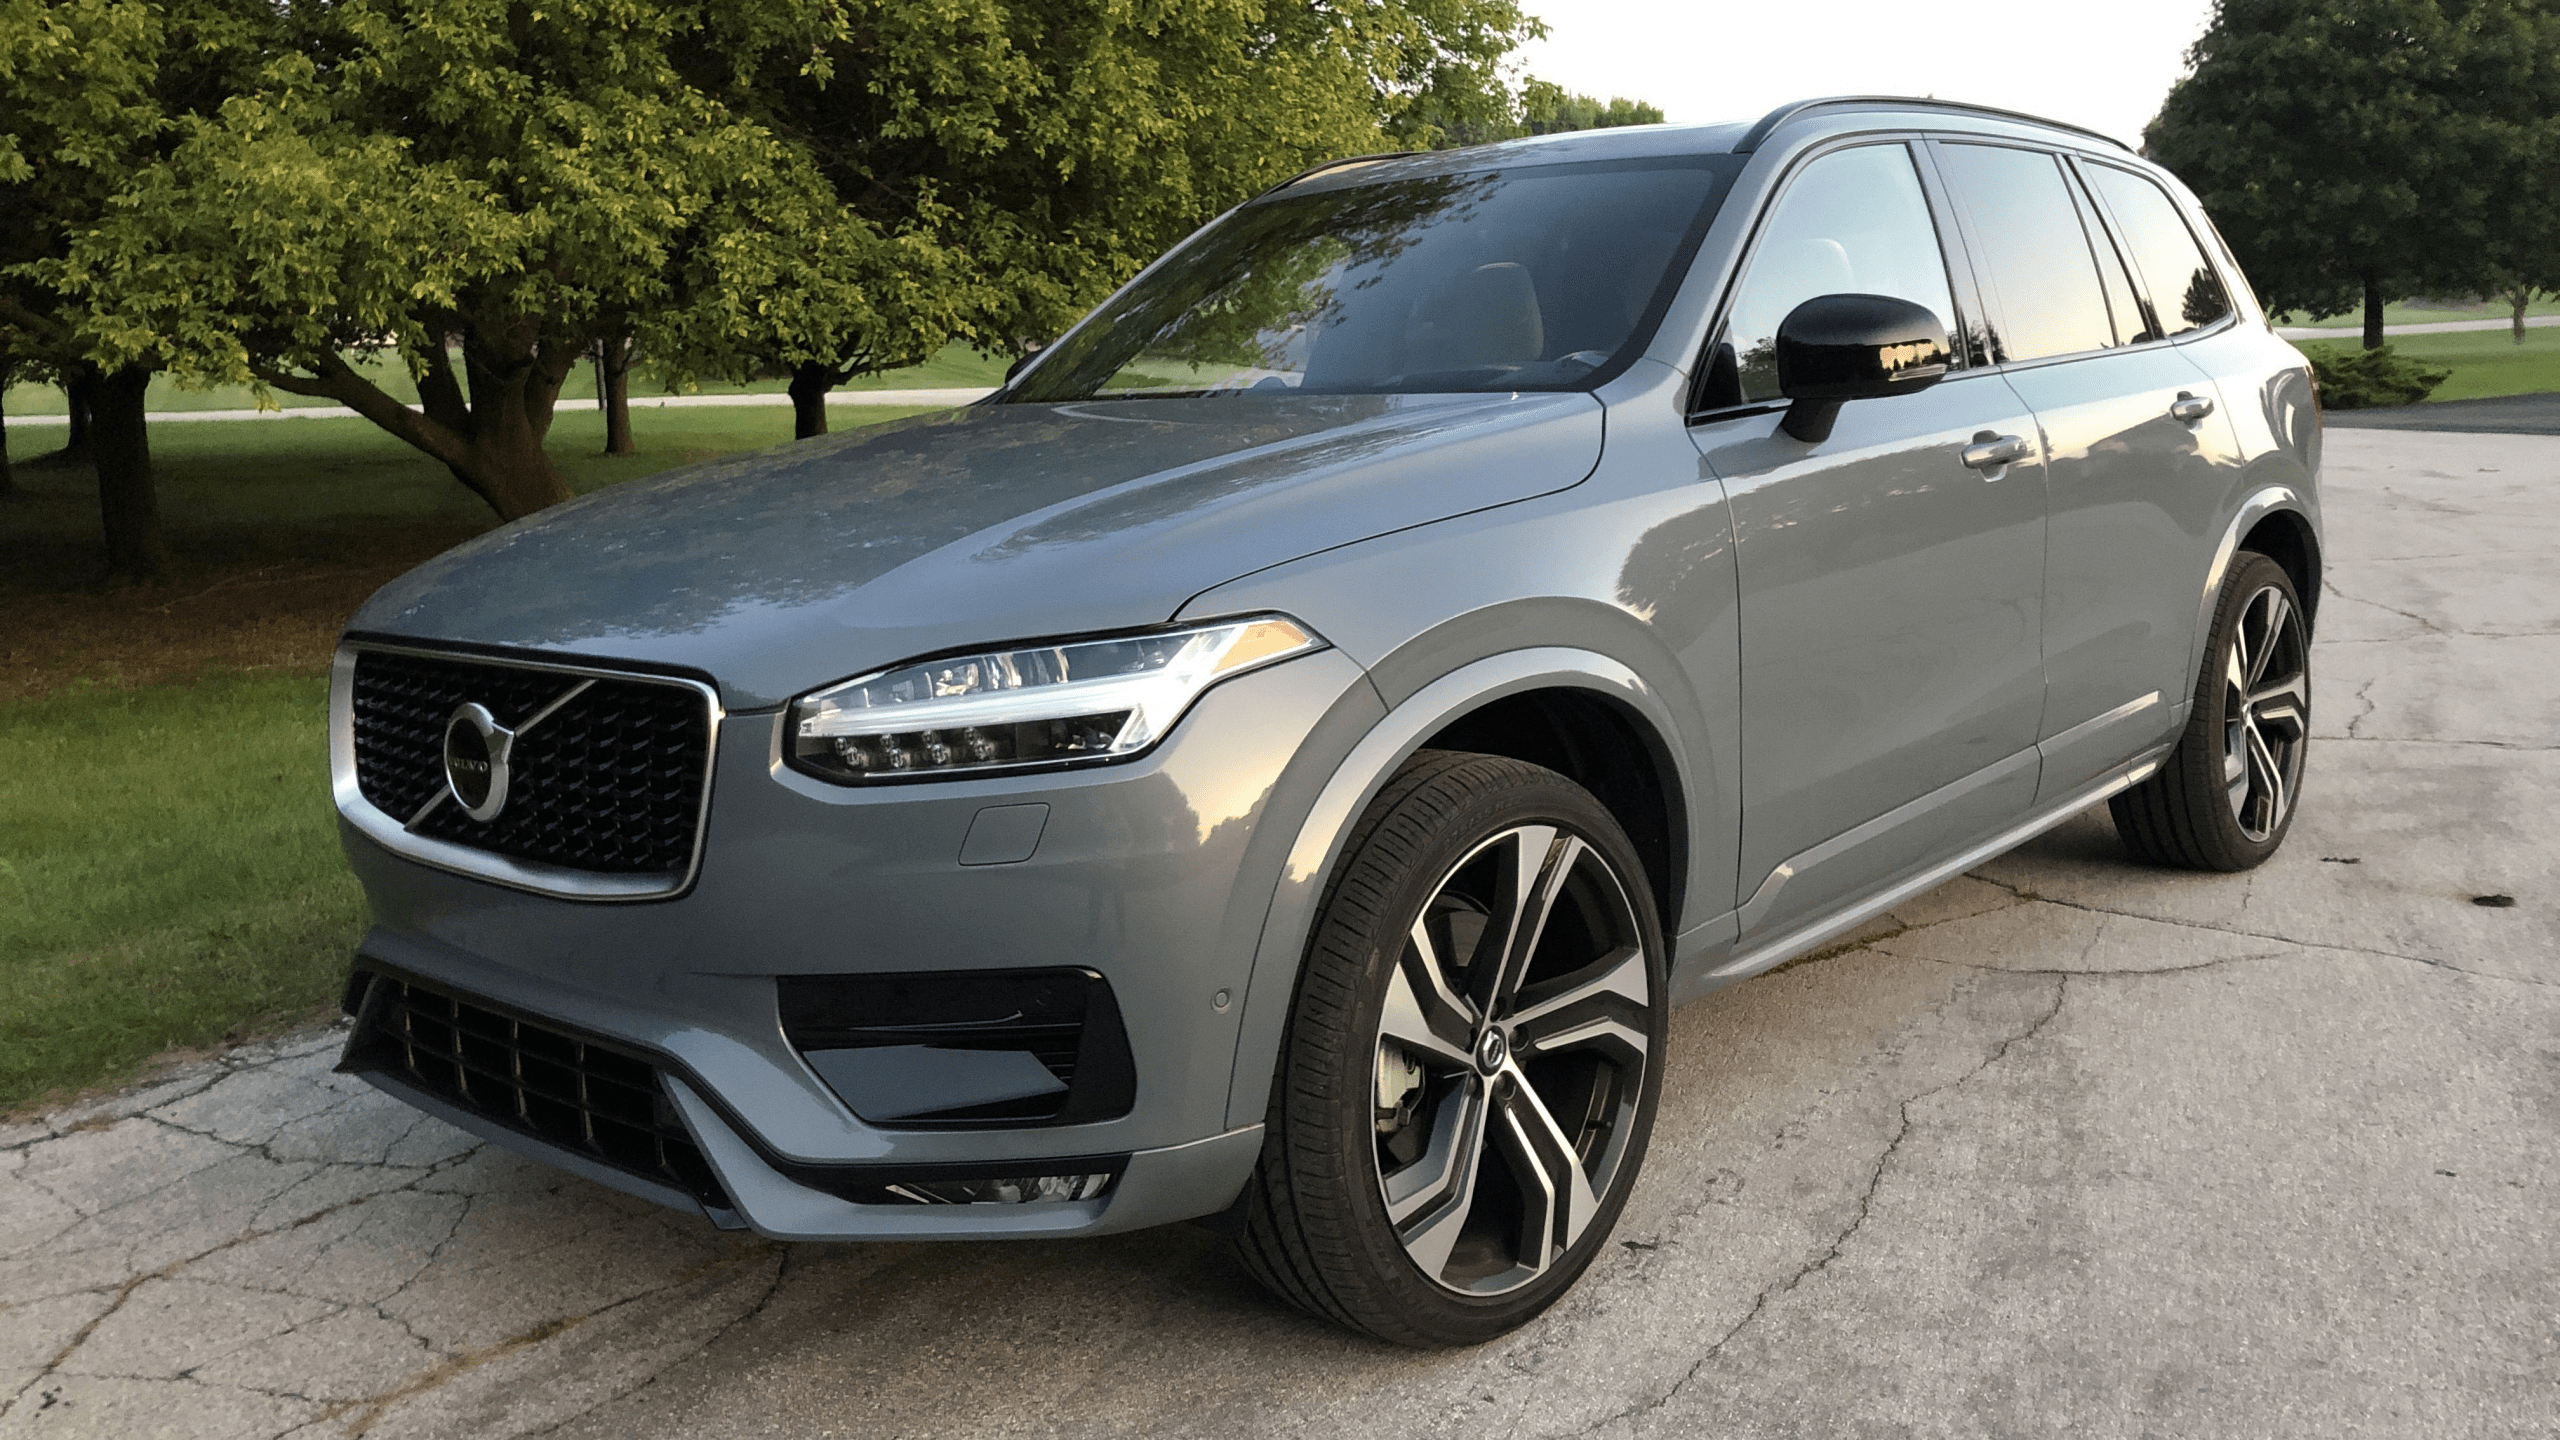 2021 Volvo S90 Price and Review in 2020 | Volvo xc90 ...